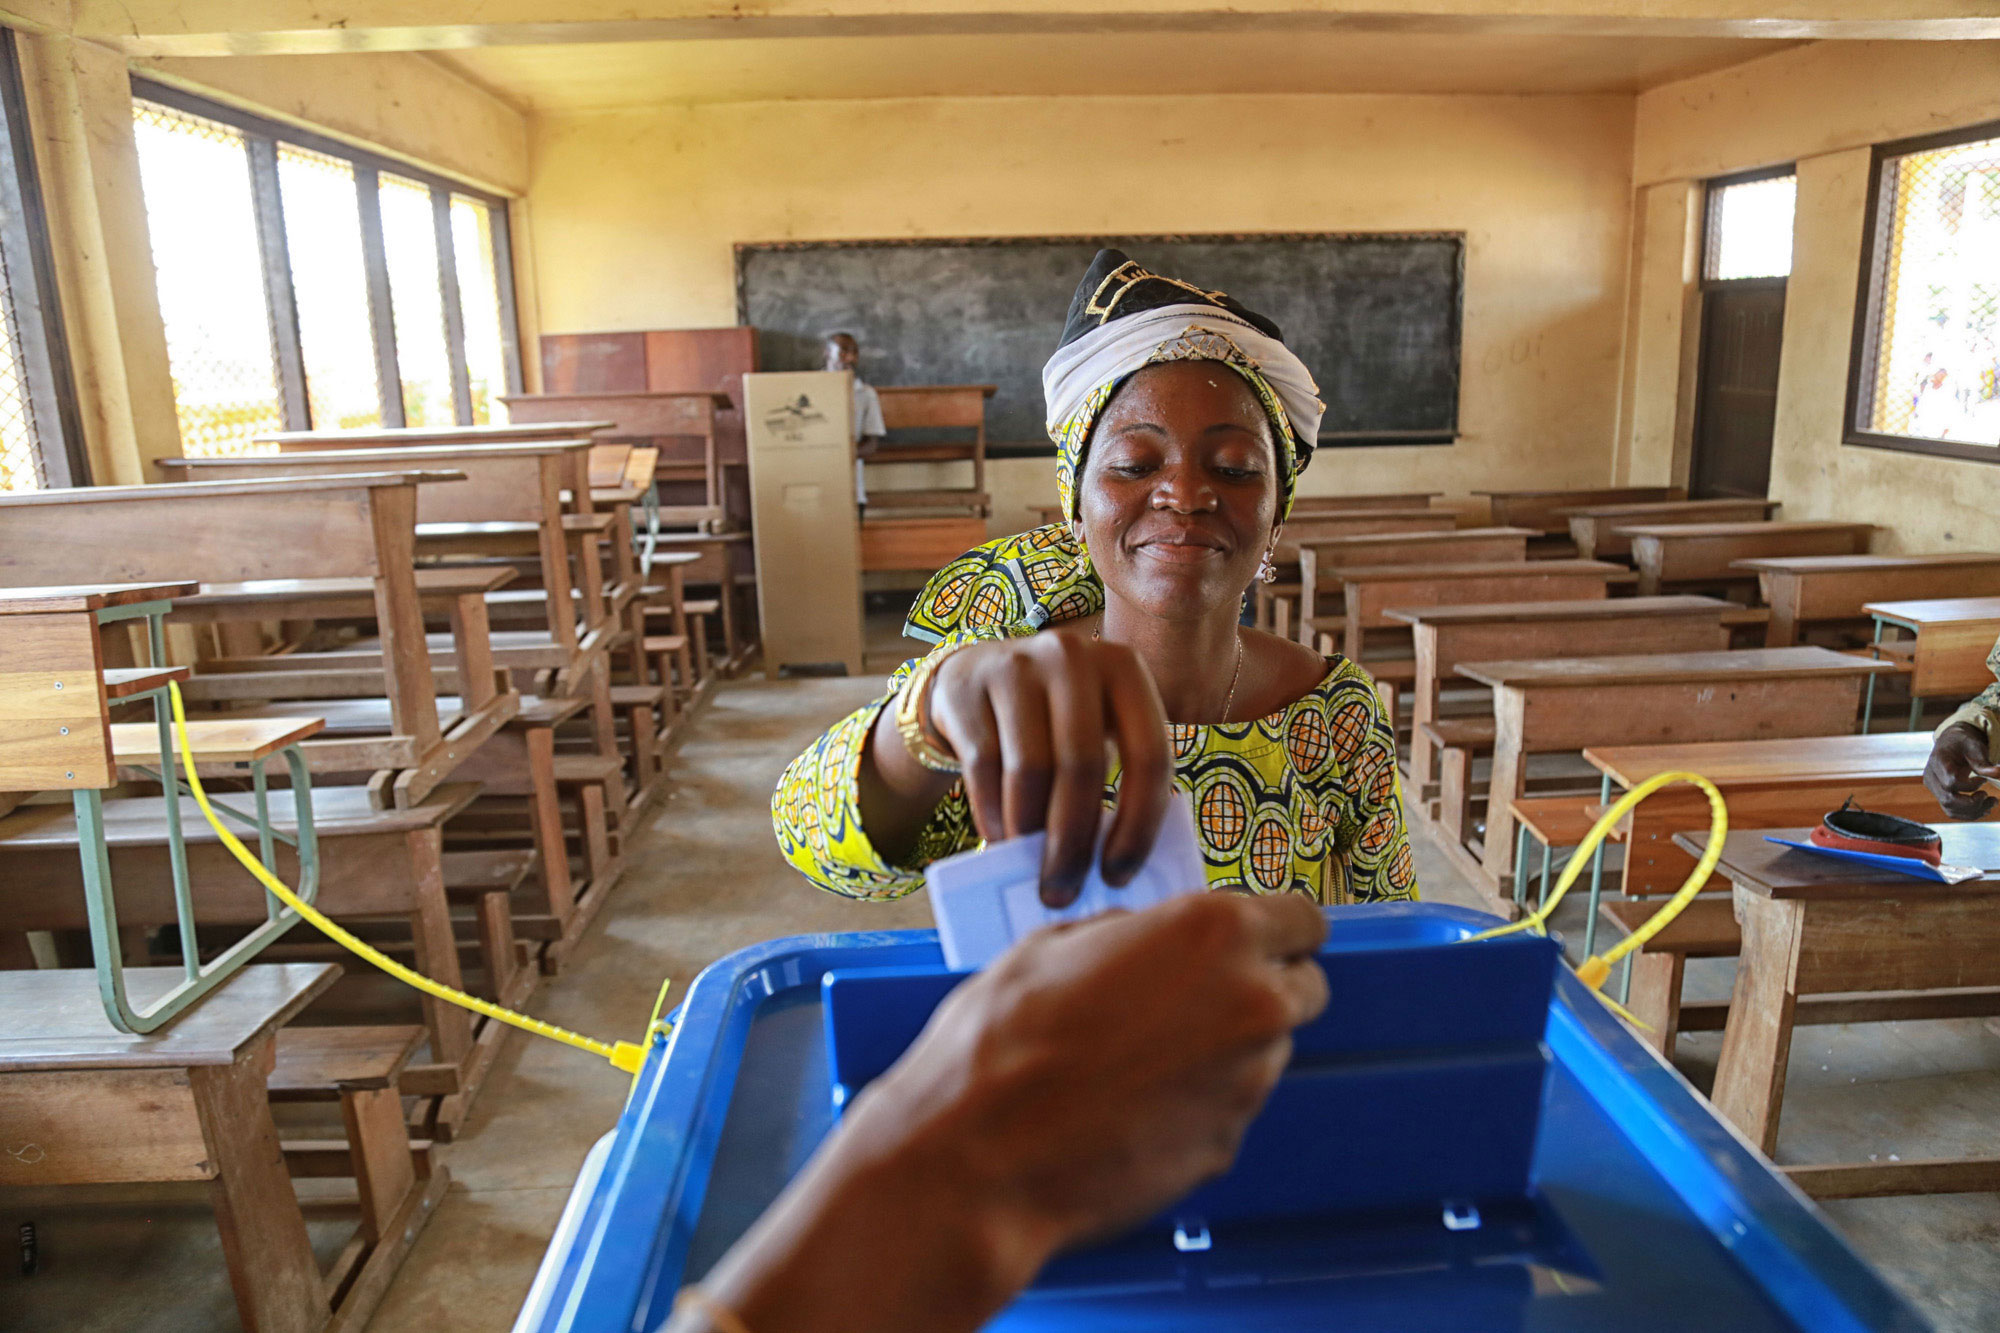 A voter casts her ballot in the Central African Republic's capital, Bangui, during a December referendum on a new draft constitution for the country. UN Photo/Nektarios Markogiannis